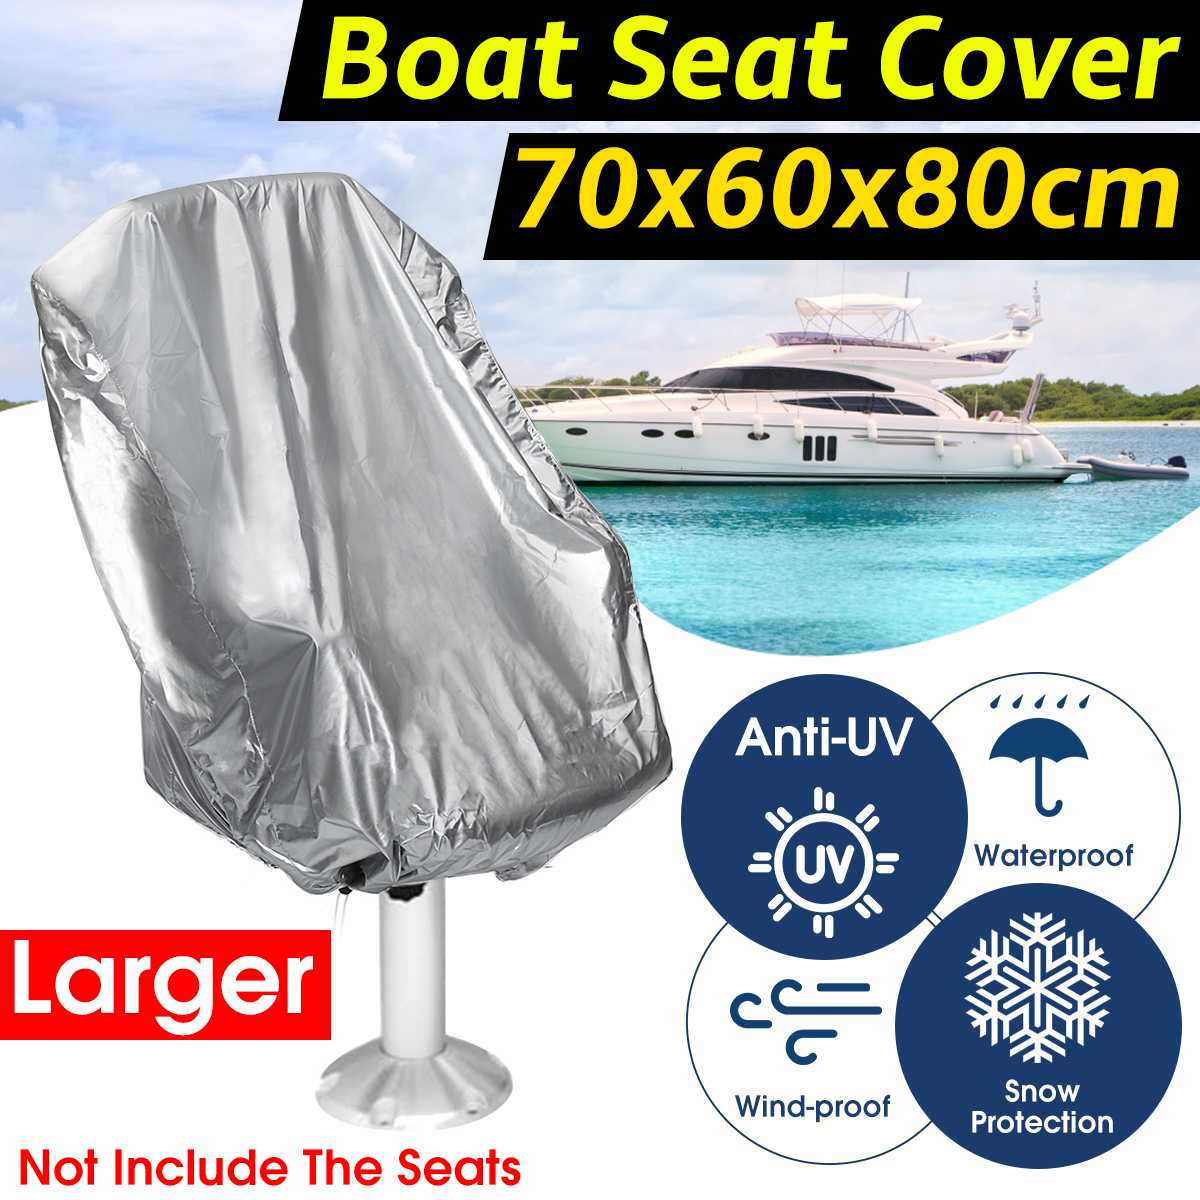 70x60x80cm Large Boat Seat Cover Anti-Dust Waterproof Yacht Seat Cover Elastic Anti-UV Boat Ship Rotate Chair Furniture Cover